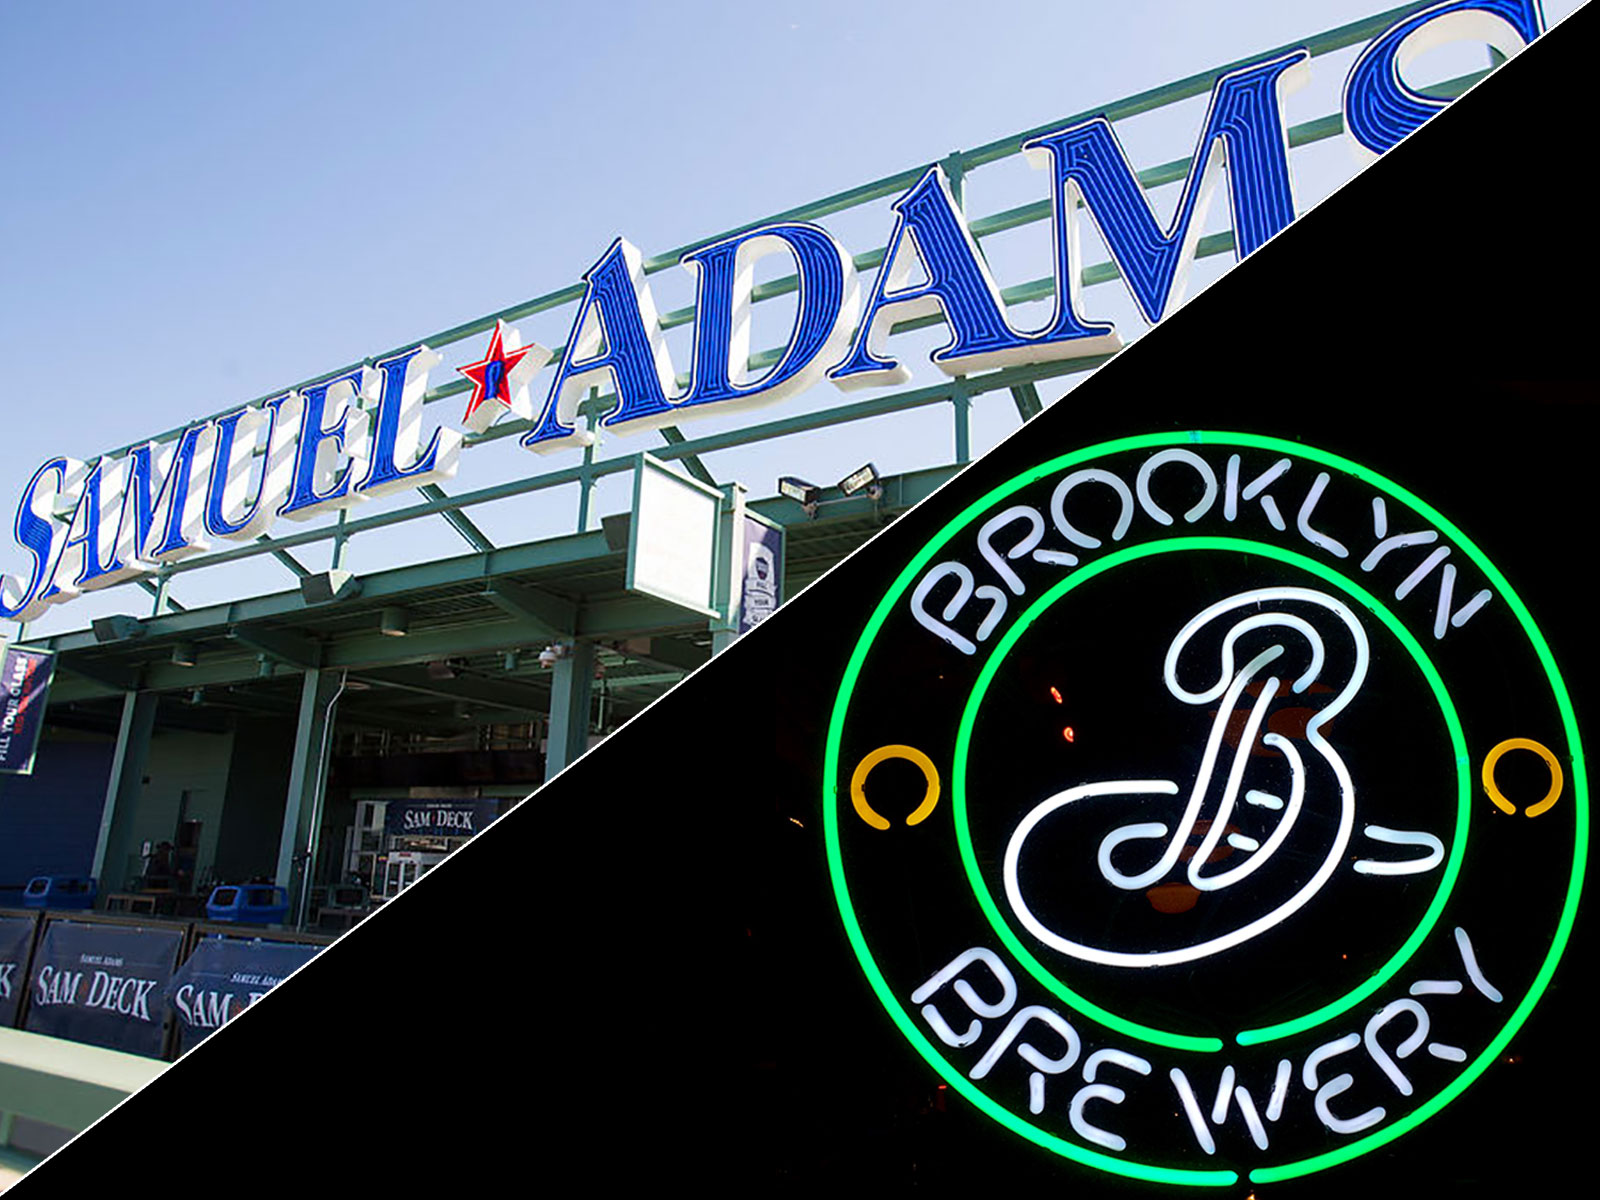 Sam Adams and Brooklyn Brewery Place Friendly Wager on Red Sox-Yankees Series